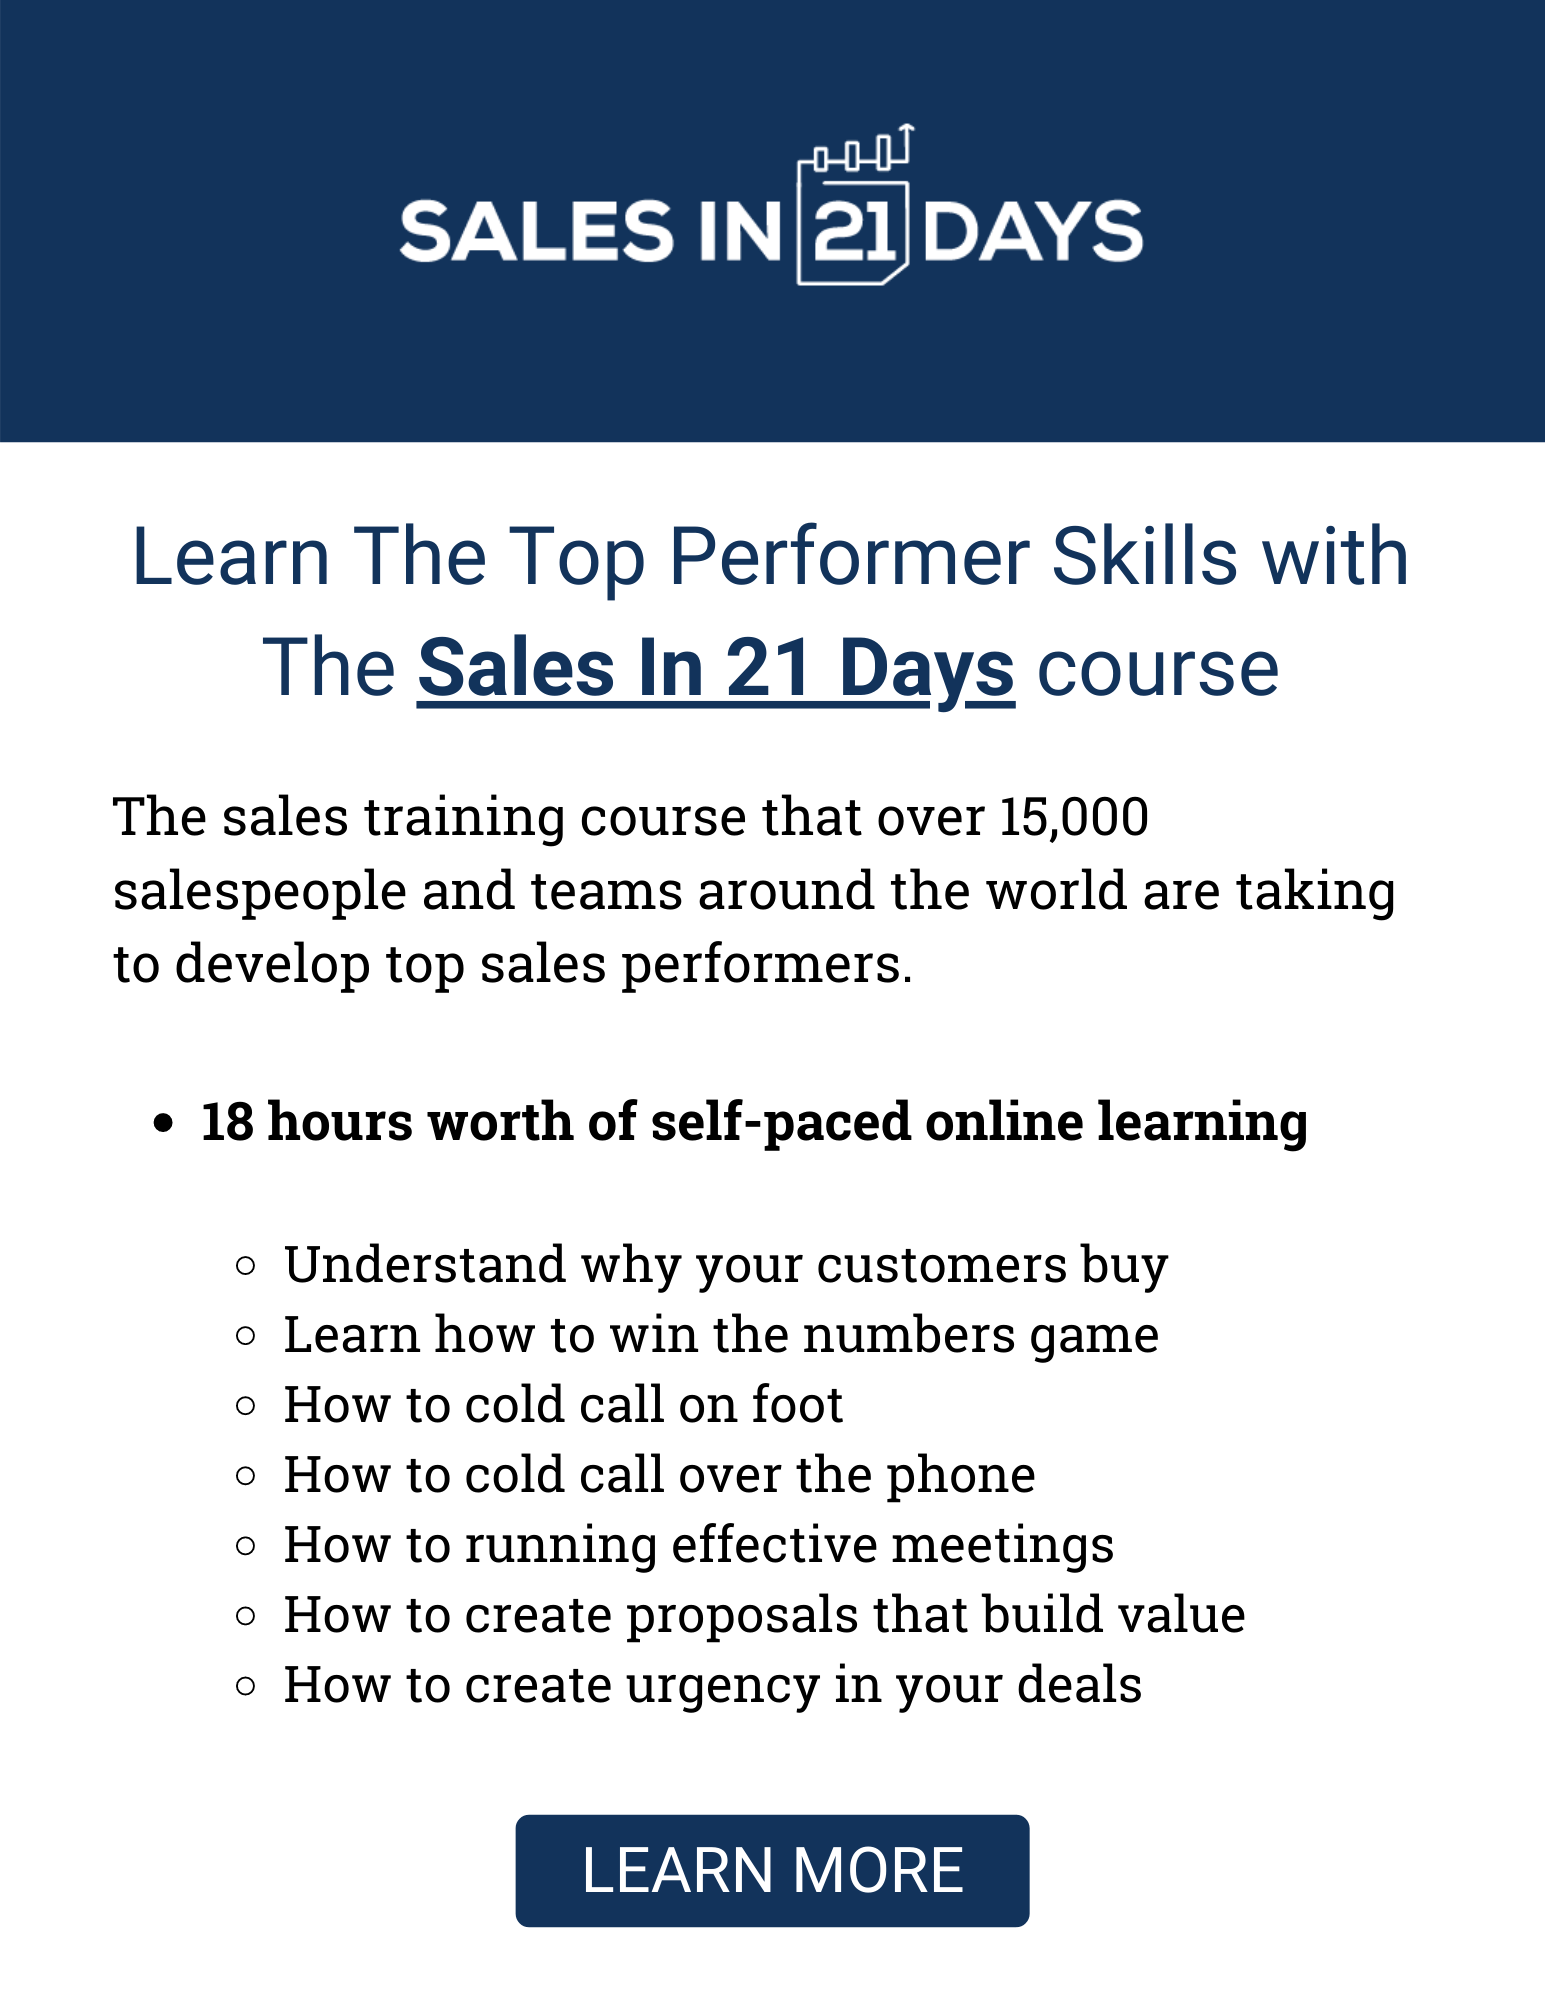 Learn Top Performer Sales Skills with The Sales In 21 Days course from Modern Sales Training